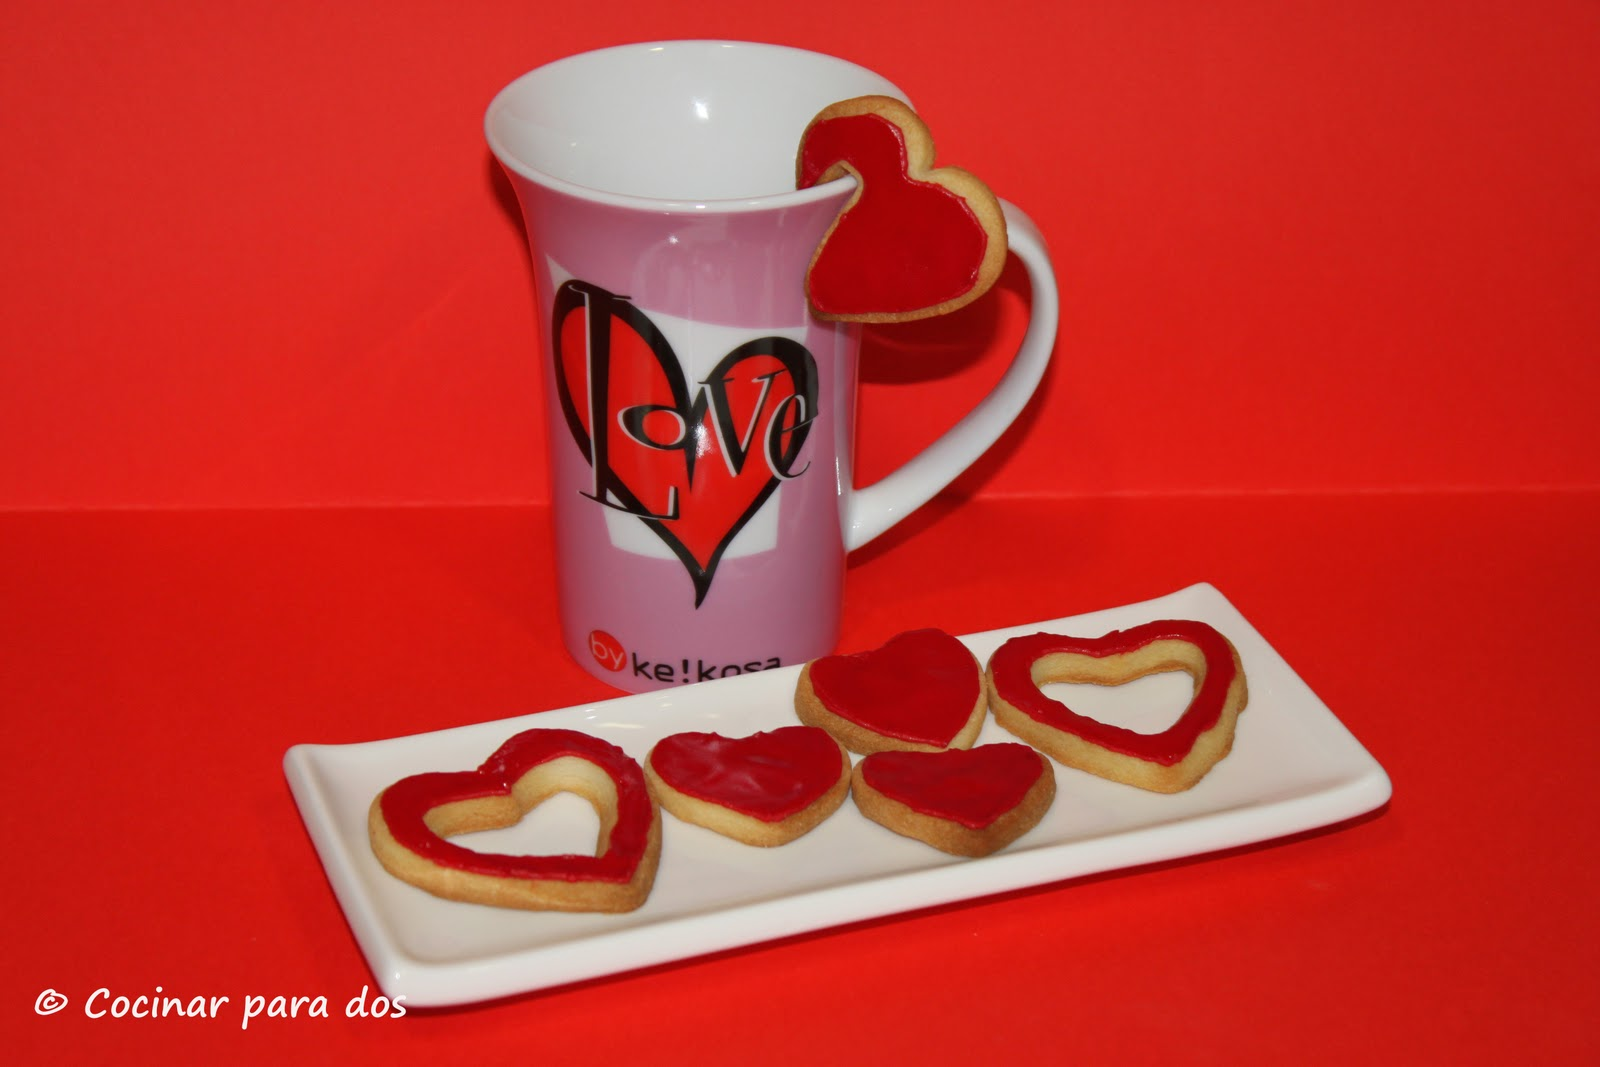 Decorar Con Glasa Real Glasa Para Decorar Galletas Feliz San Valentín